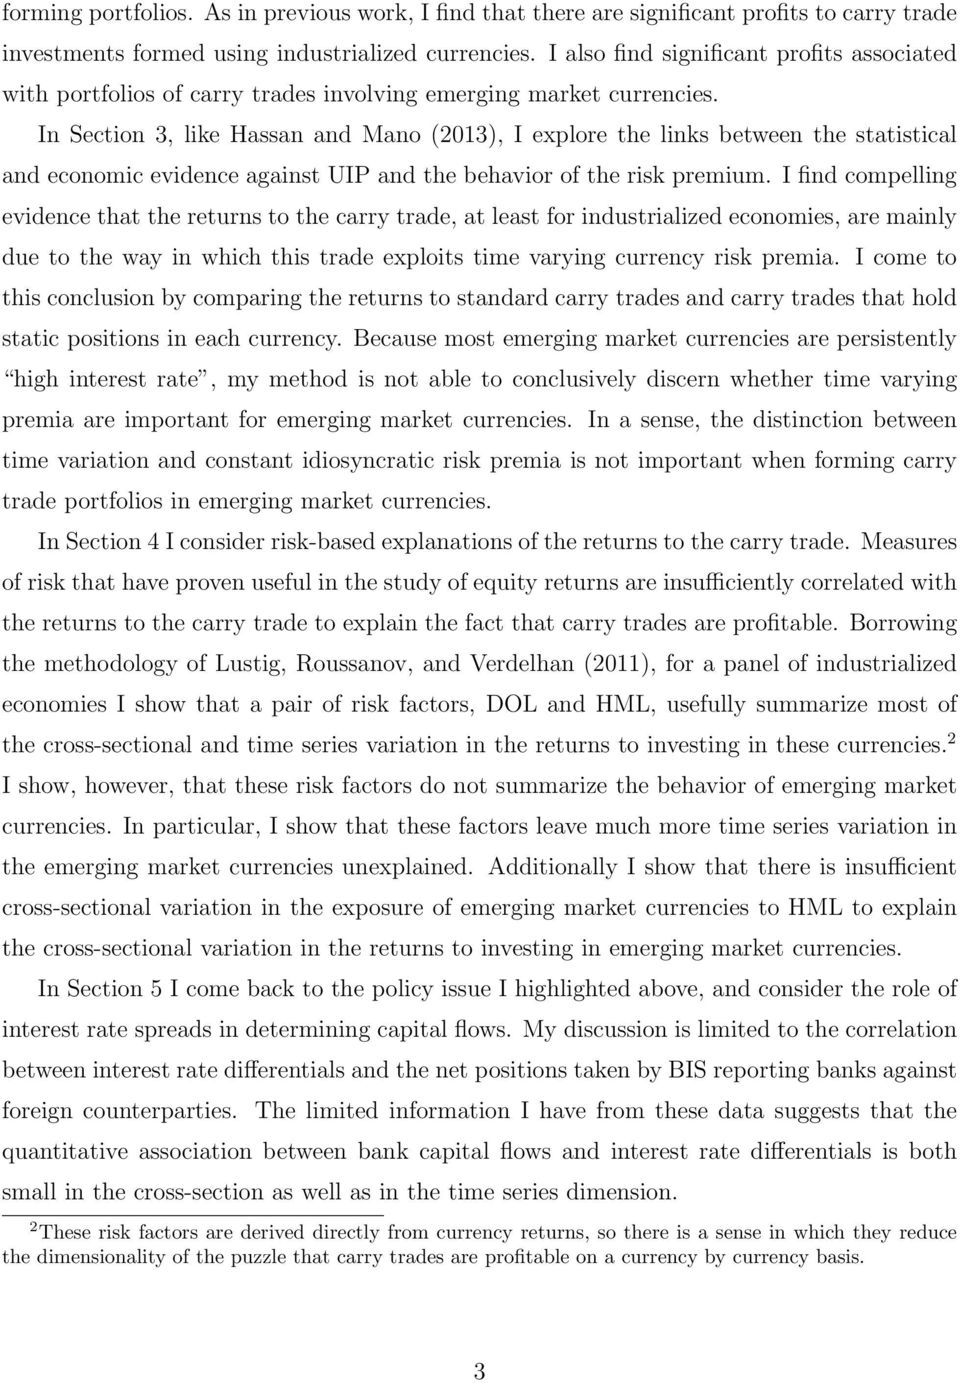 In Section 3, like Hassan and Mano (2013), I explore the links between the statistical and economic evidence against UIP and the behavior of the risk premium.